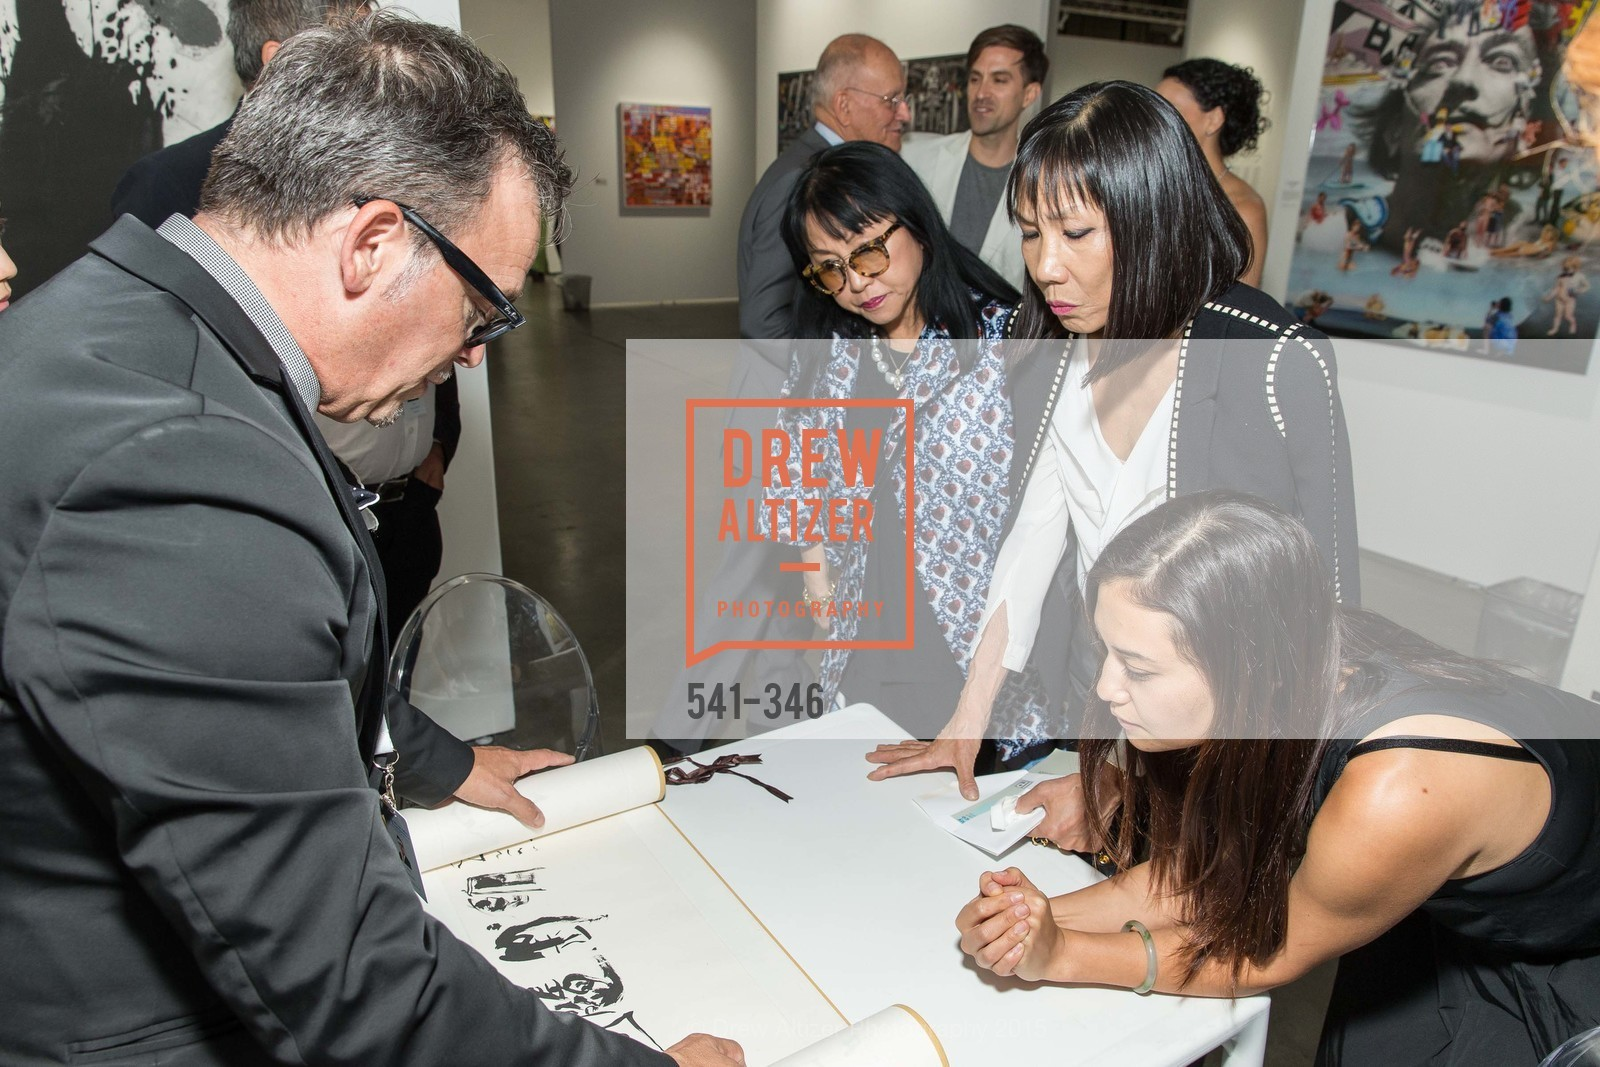 Suno Kay Osterweis, Lucy Sun, Karin Oen, Art Miami Presents: Art Silicon Valley, San Mateo County Event Center. 1346 Saratoga Dr, October 8th, 2015,Drew Altizer, Drew Altizer Photography, full-service agency, private events, San Francisco photographer, photographer california